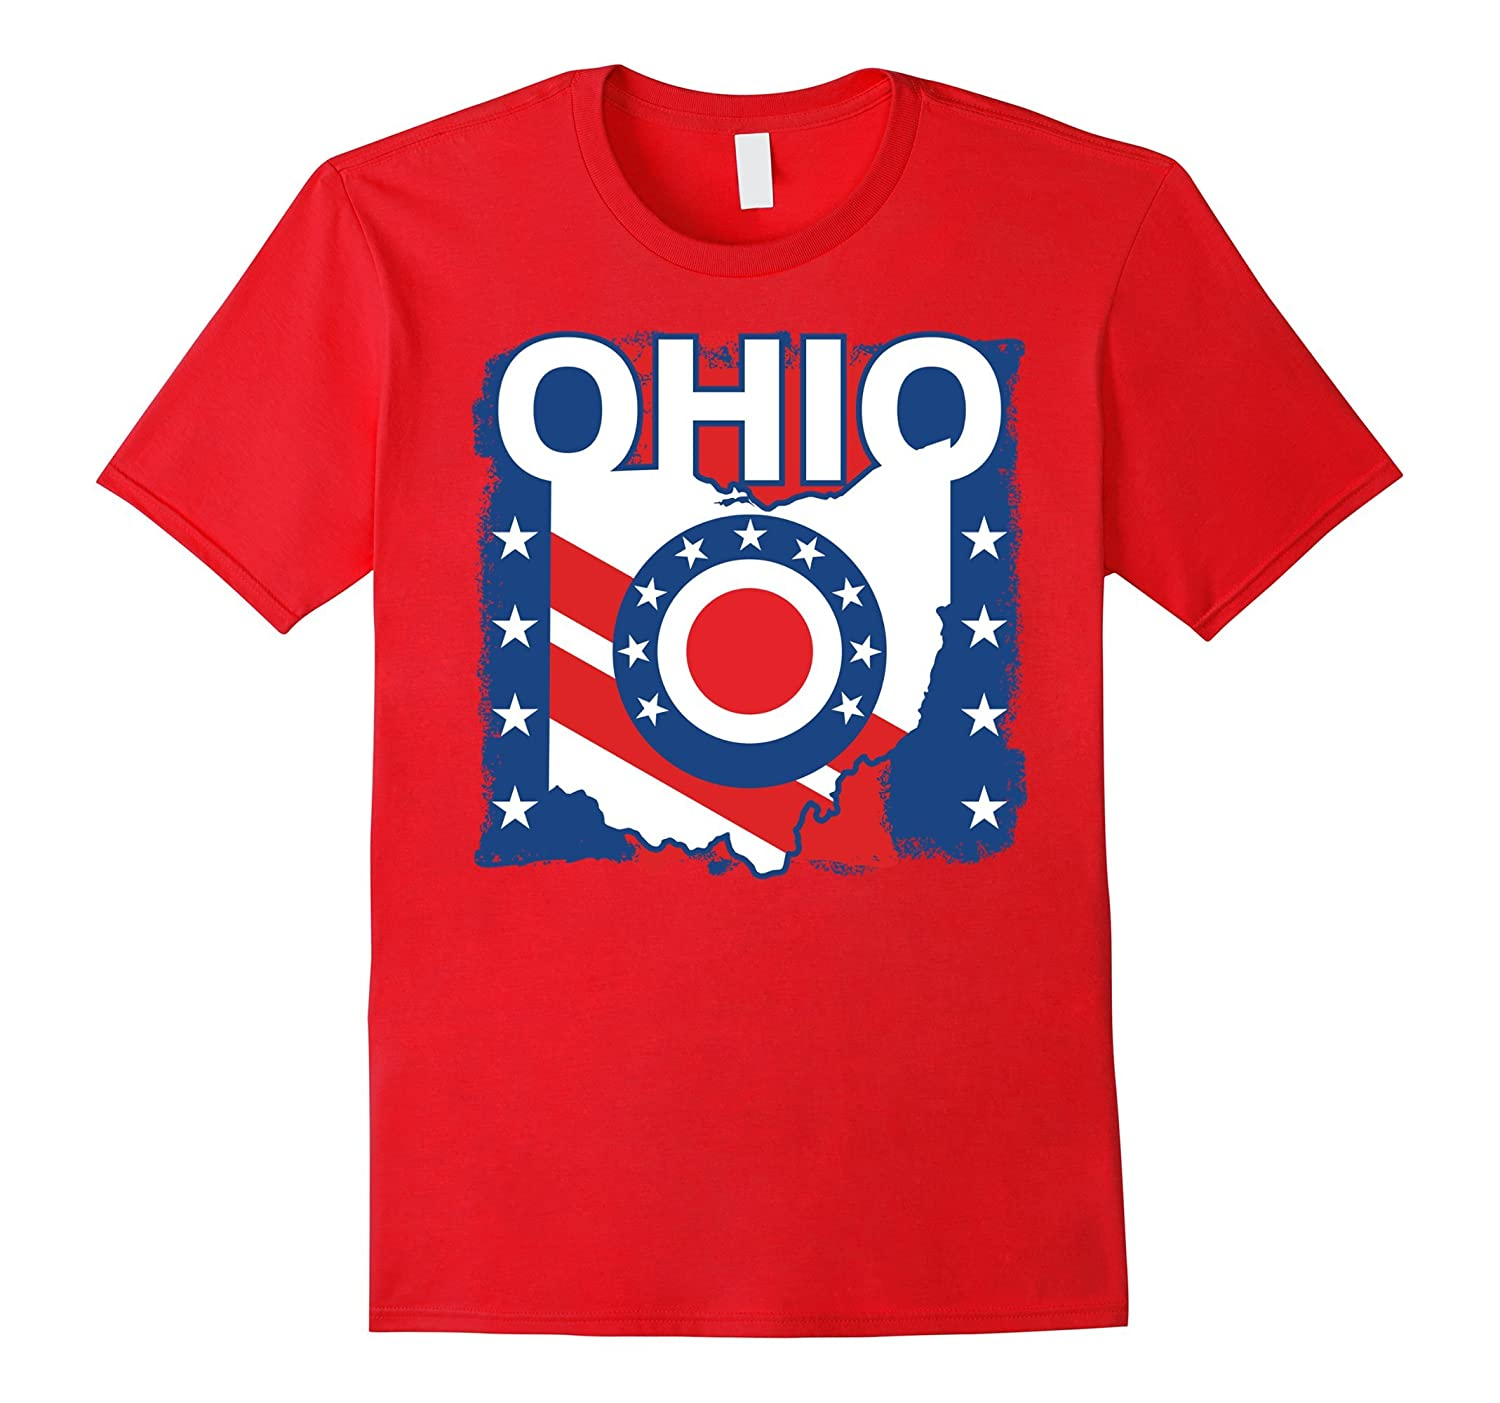 Ohio Grunge Red White Blue Patriotic American T-Shirt